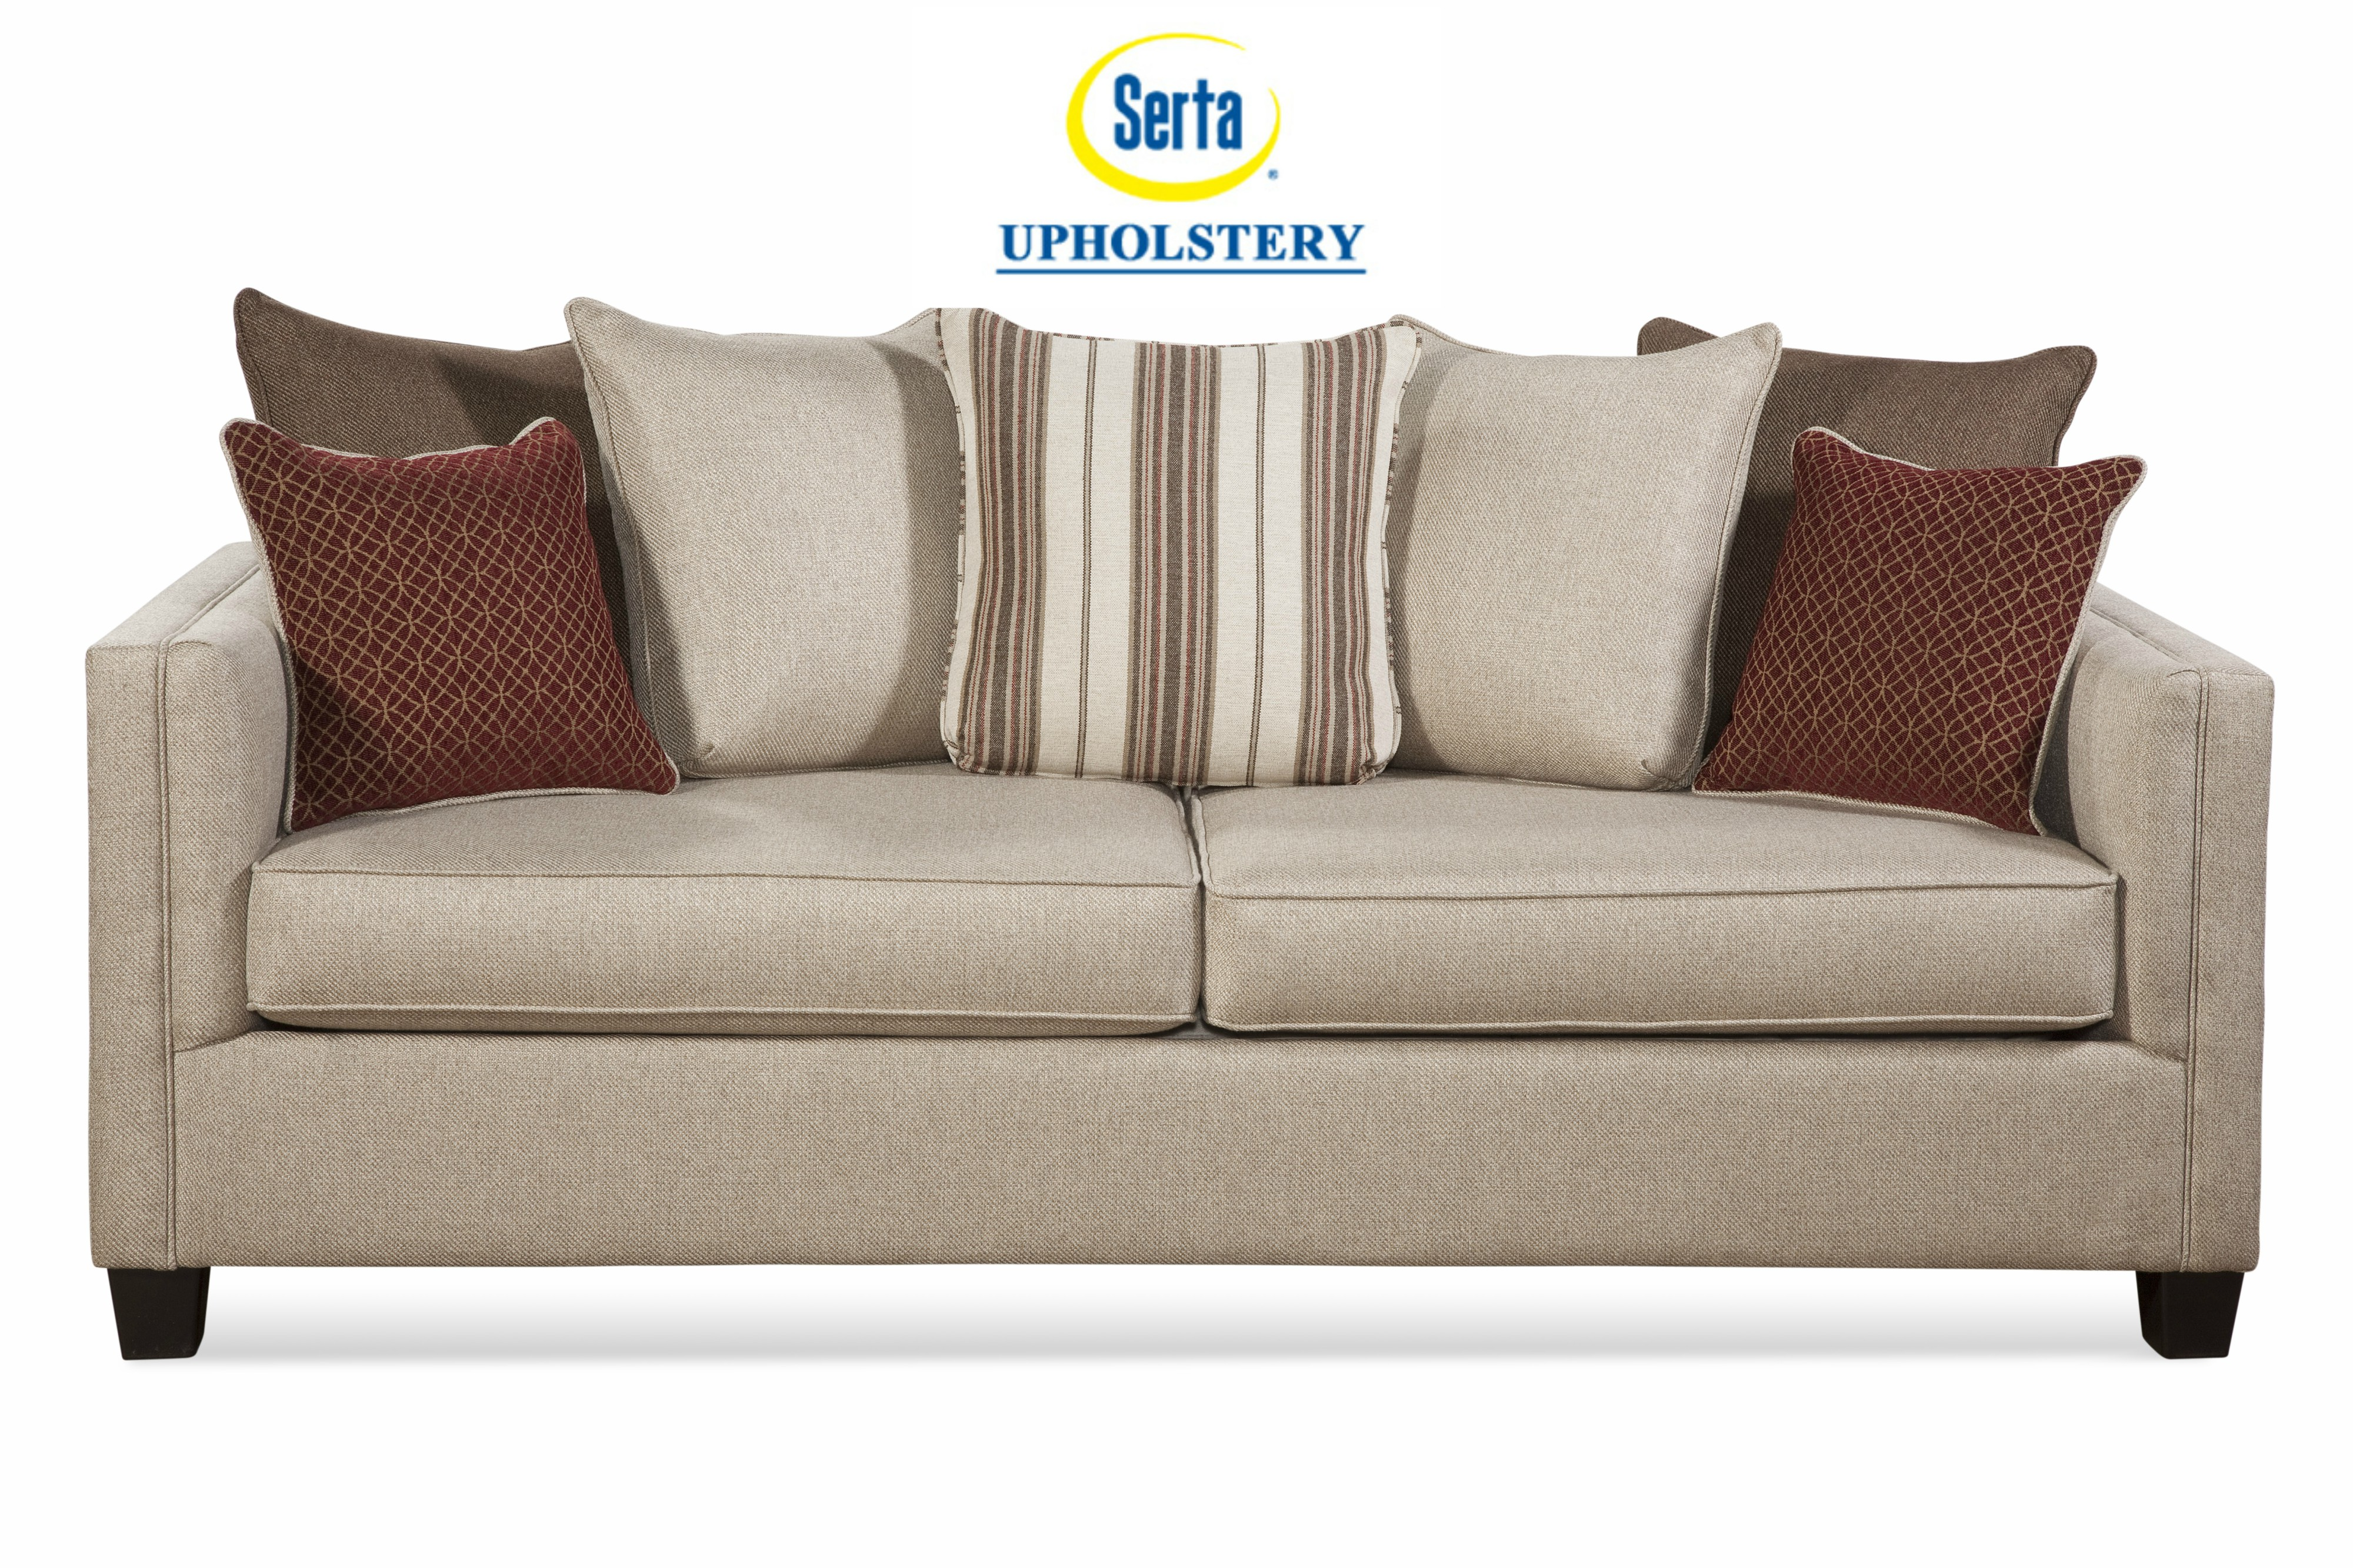 - SERTA Upholstery By Hughes REFLEX SAND Sleeper Sofa - Dream Rooms